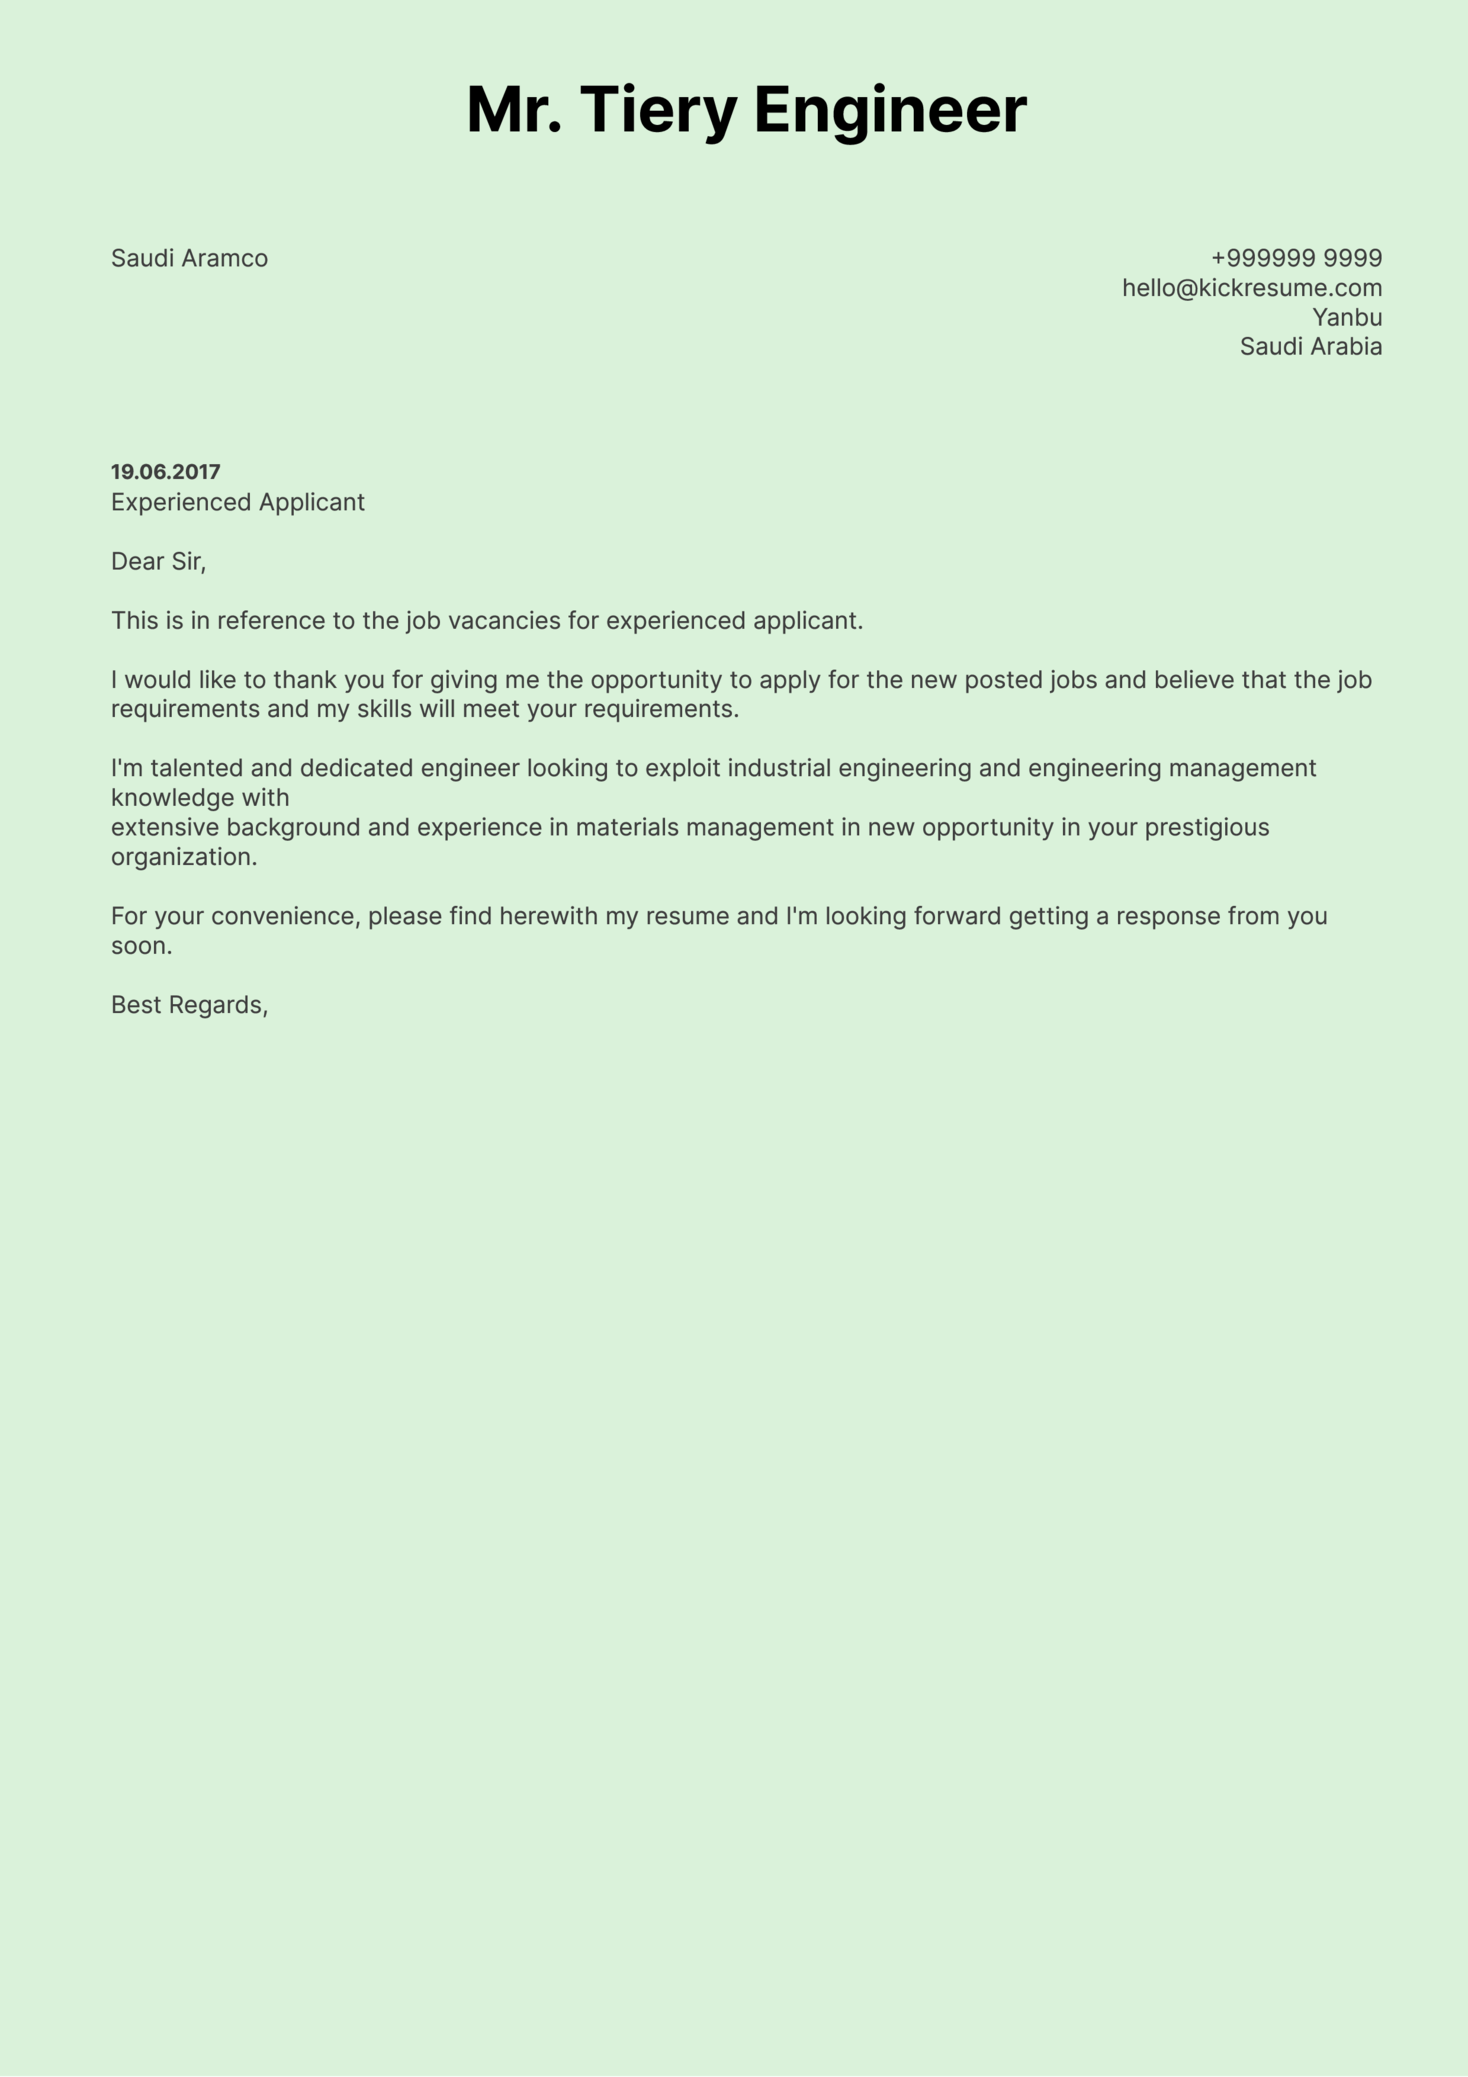 cover letter examples by real people  saudi aramco process engineer cover letter sample